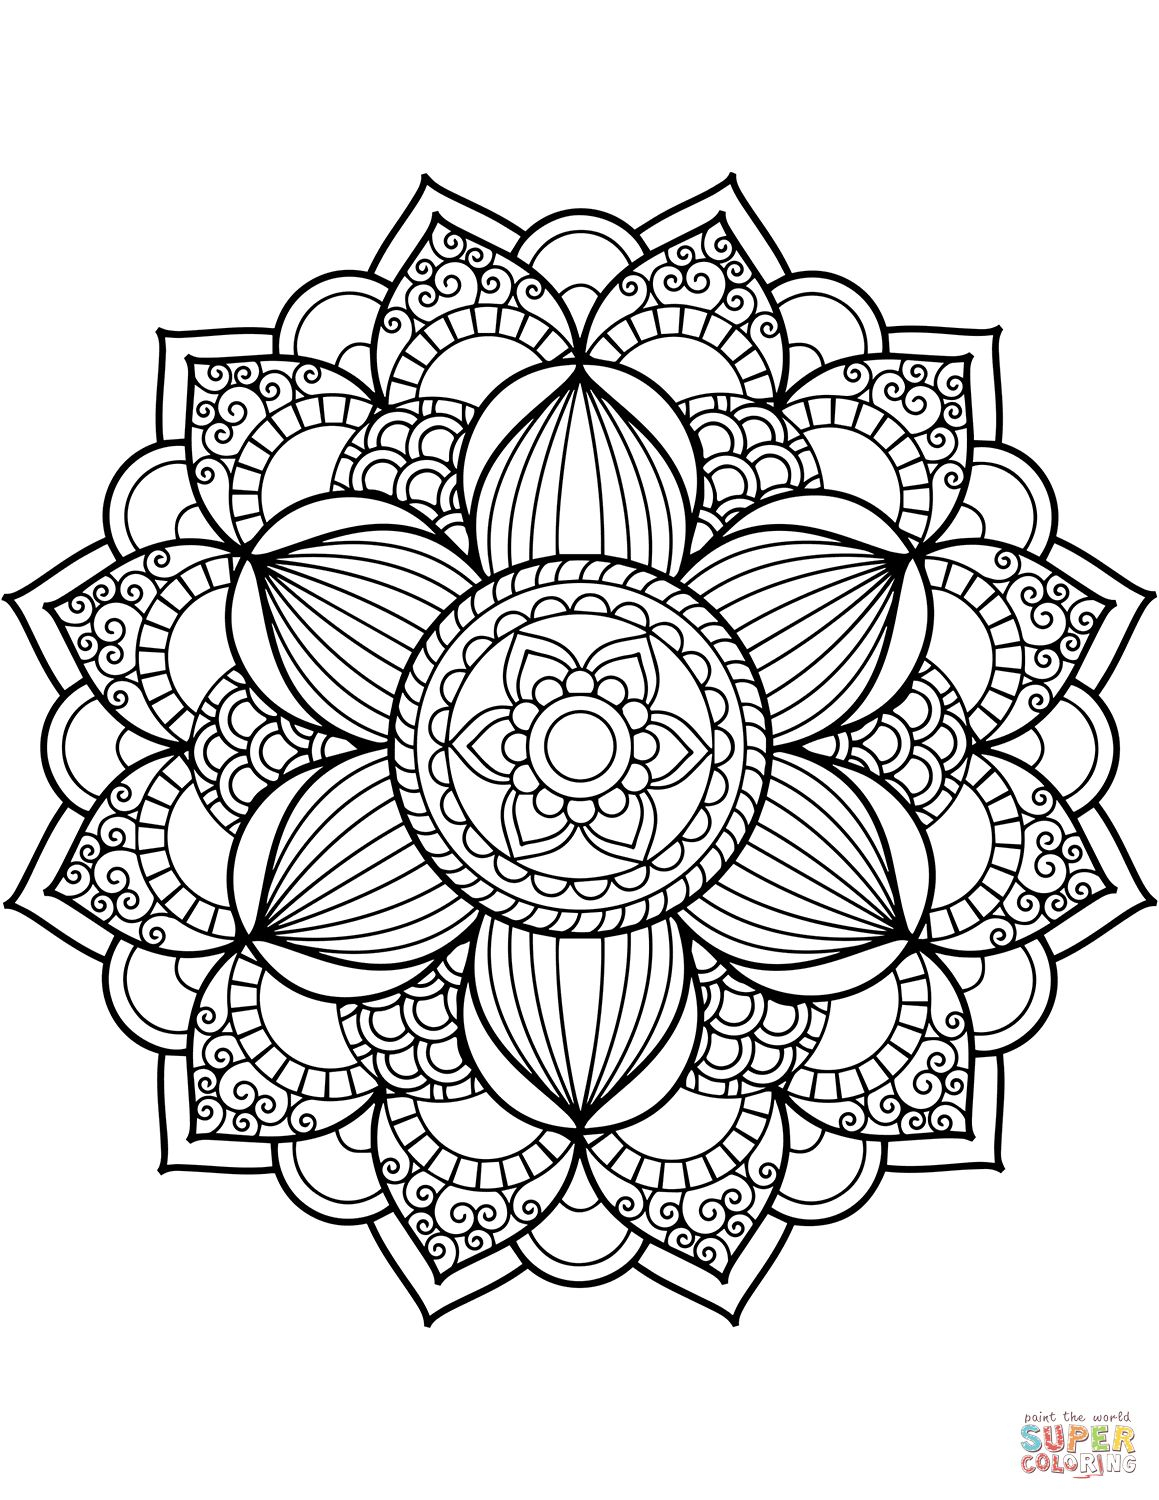 free mandalas to print and color free printable mandala coloring book pages for adults and kids mandalas color free to print and